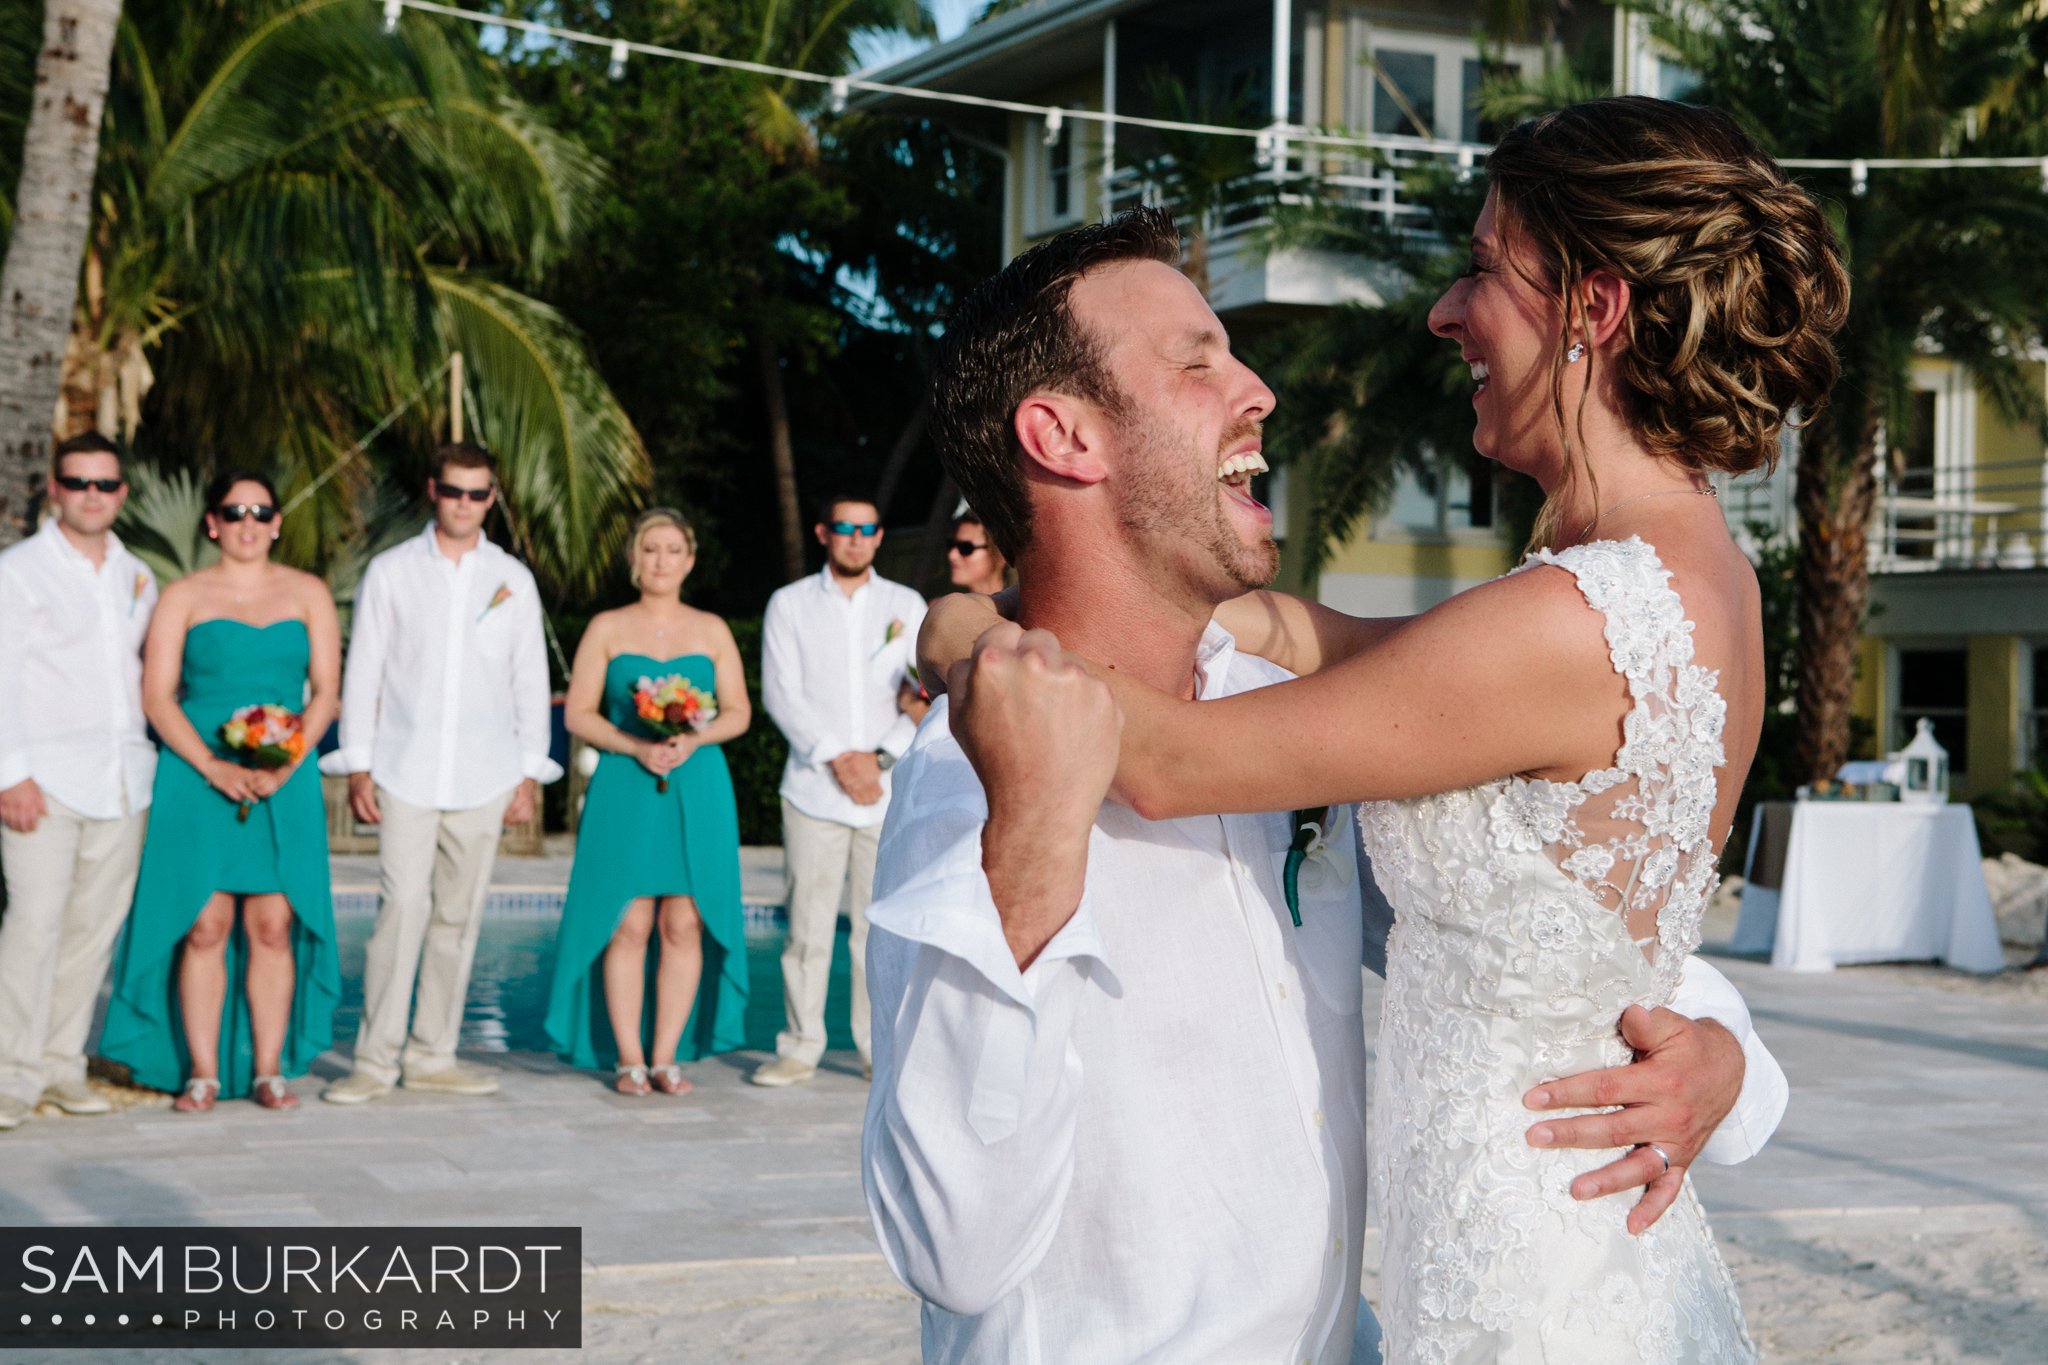 samburkardt_key_west_wedding_marathon_florida_summer_beach_ocean_front_0054.jpg